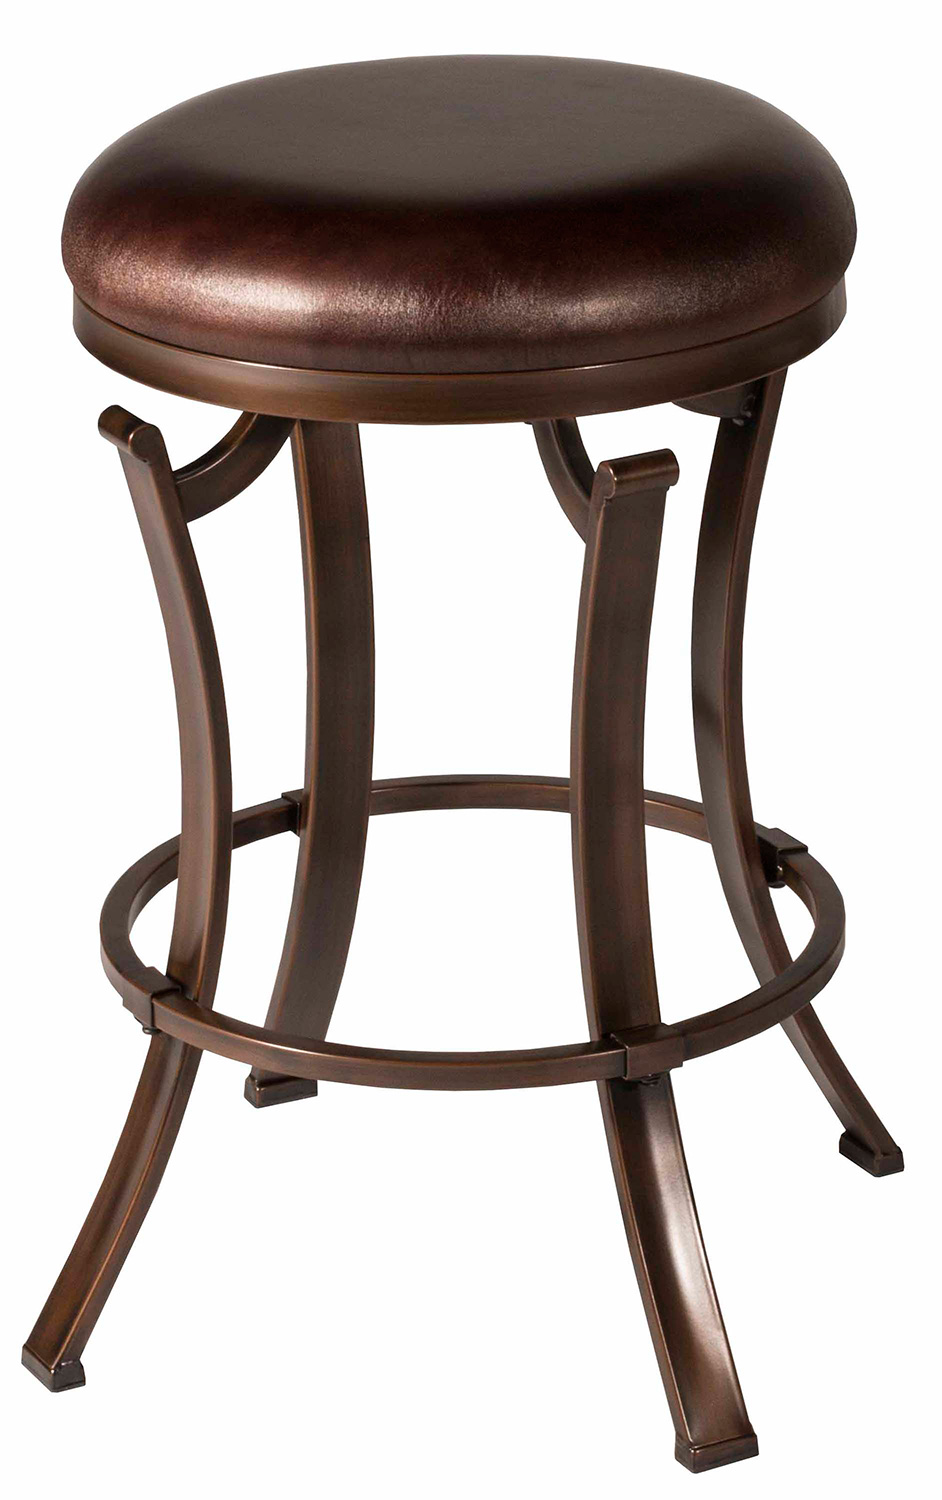 Hillsdale Kelford Swivel Backless Counter Stool - Black - Cocoa Fabric